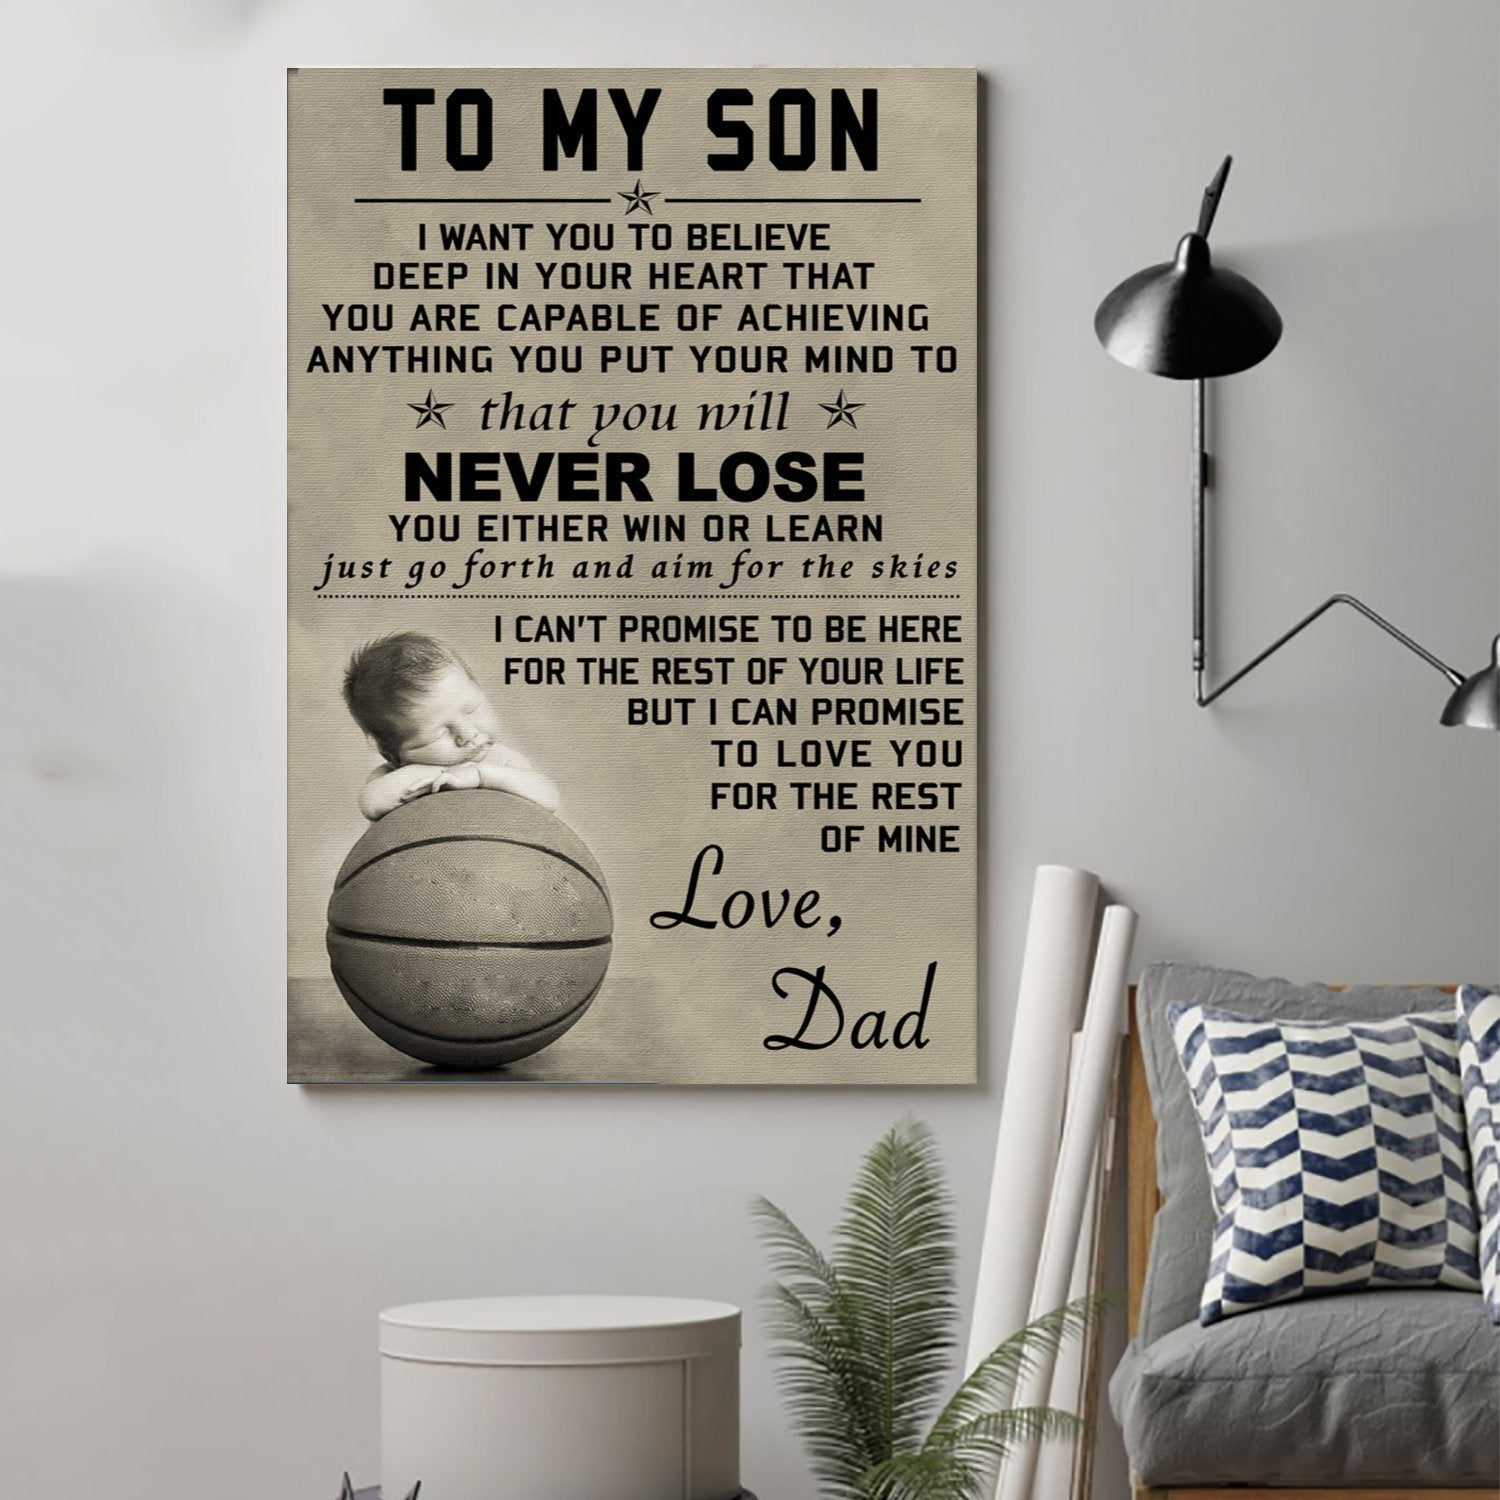 (cv461) Basketball Poster - Dad son - never lose